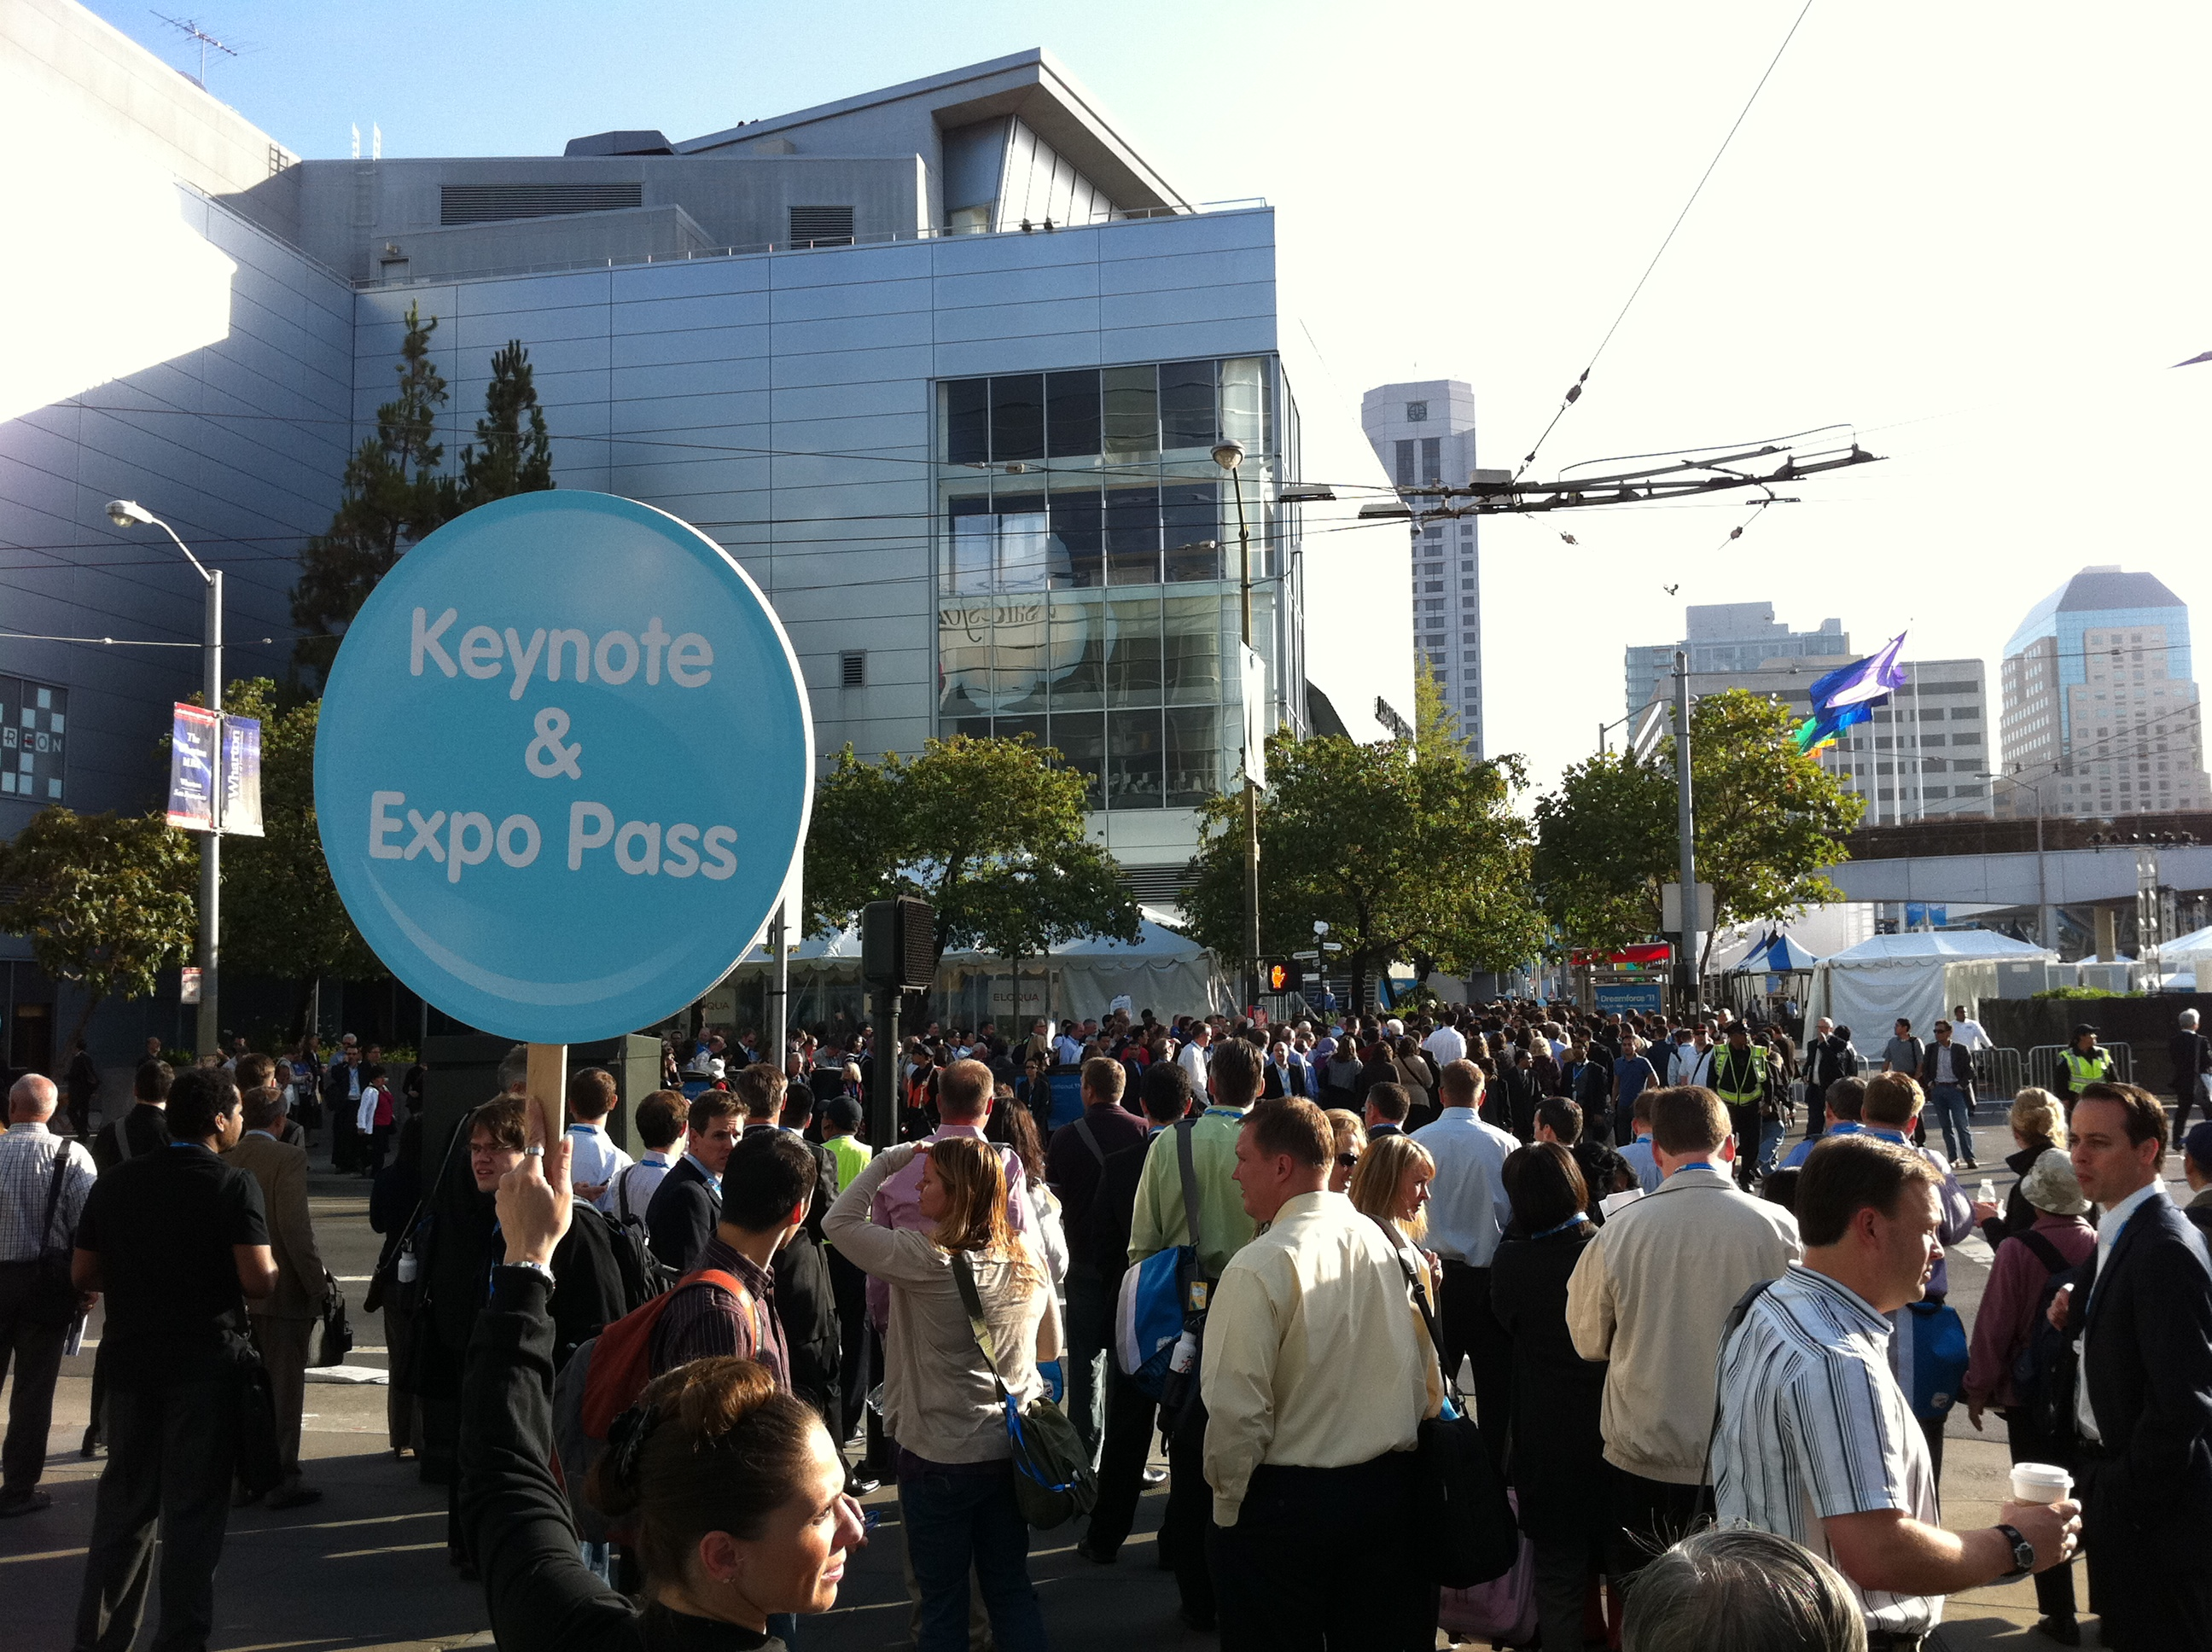 Crowds at Dreamforce 11 outside Moscone Center